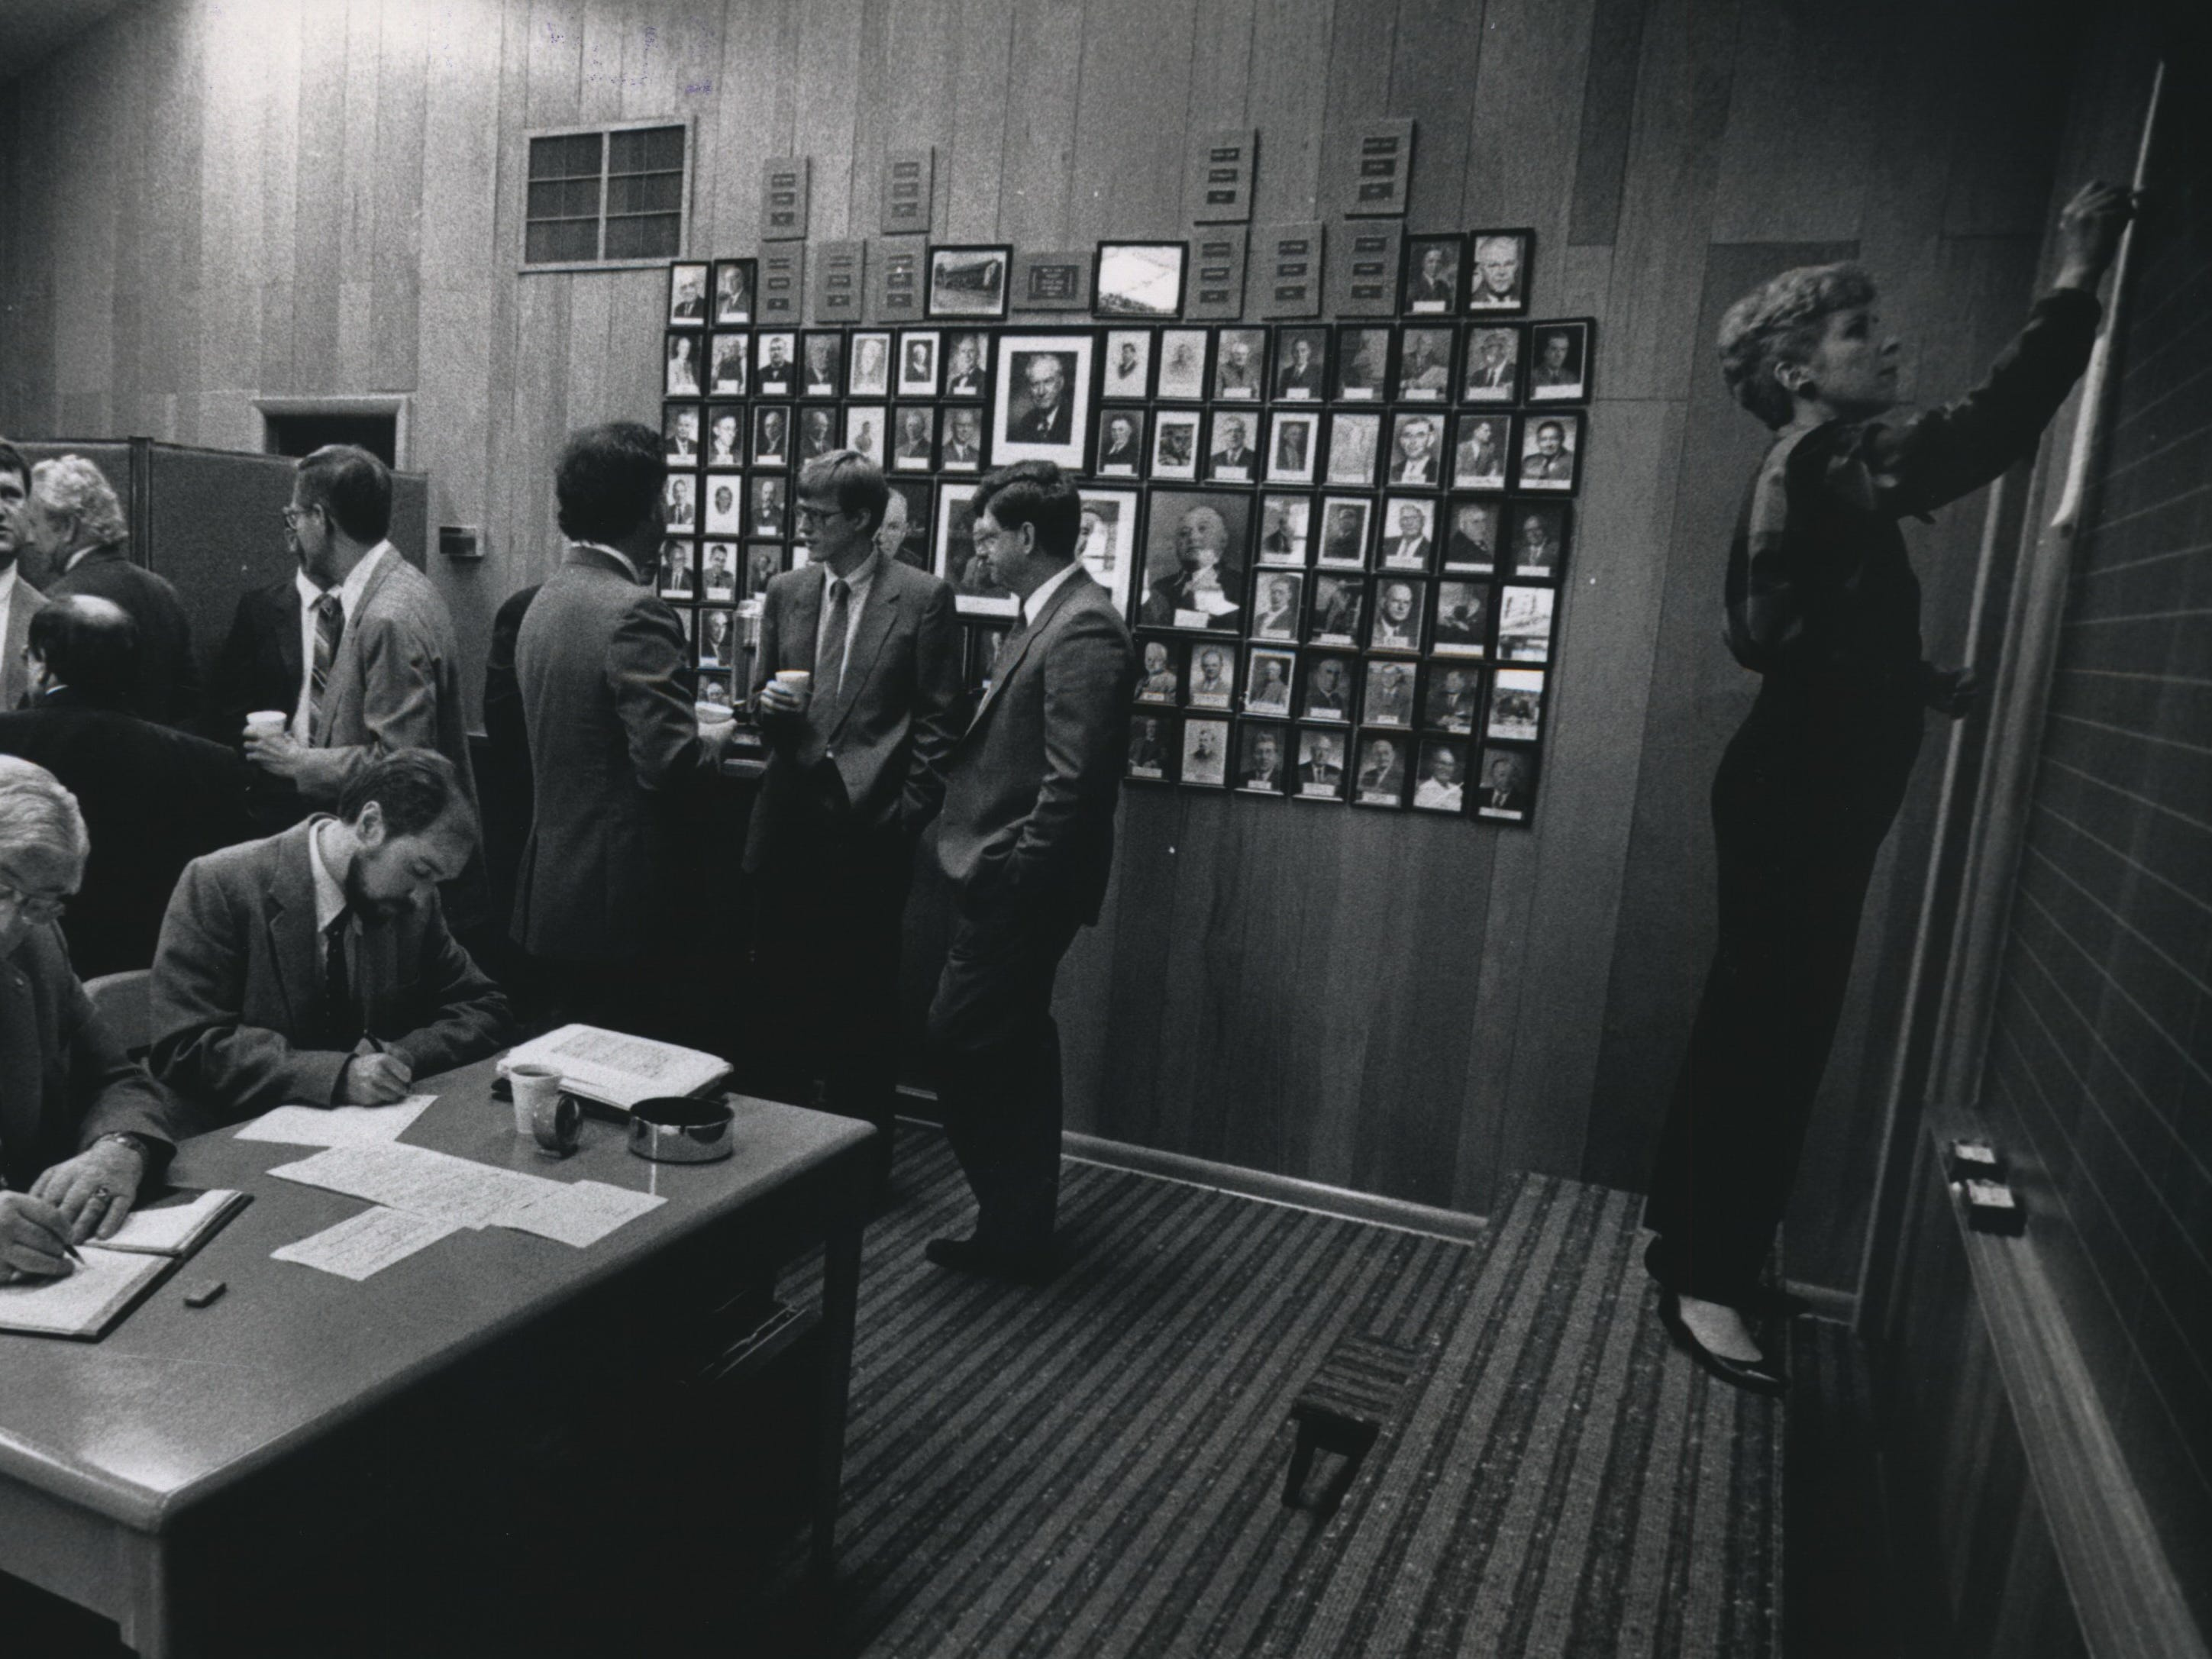 Trading gets underway at the National Cheese Exchange in Green Bay. Every Friday morning, a handful of members met in a room with chalkboards to buy, sell and set the nation's cheese prices. Clerk Tina Seifert writes down the latest prices as the brokers watch for a good price. The National Cheese Exchange operated out of Green Bay from the 1950s until its demise in 1997. Price setting was then computerized and moved to the Chicago Mercantile Exchange.